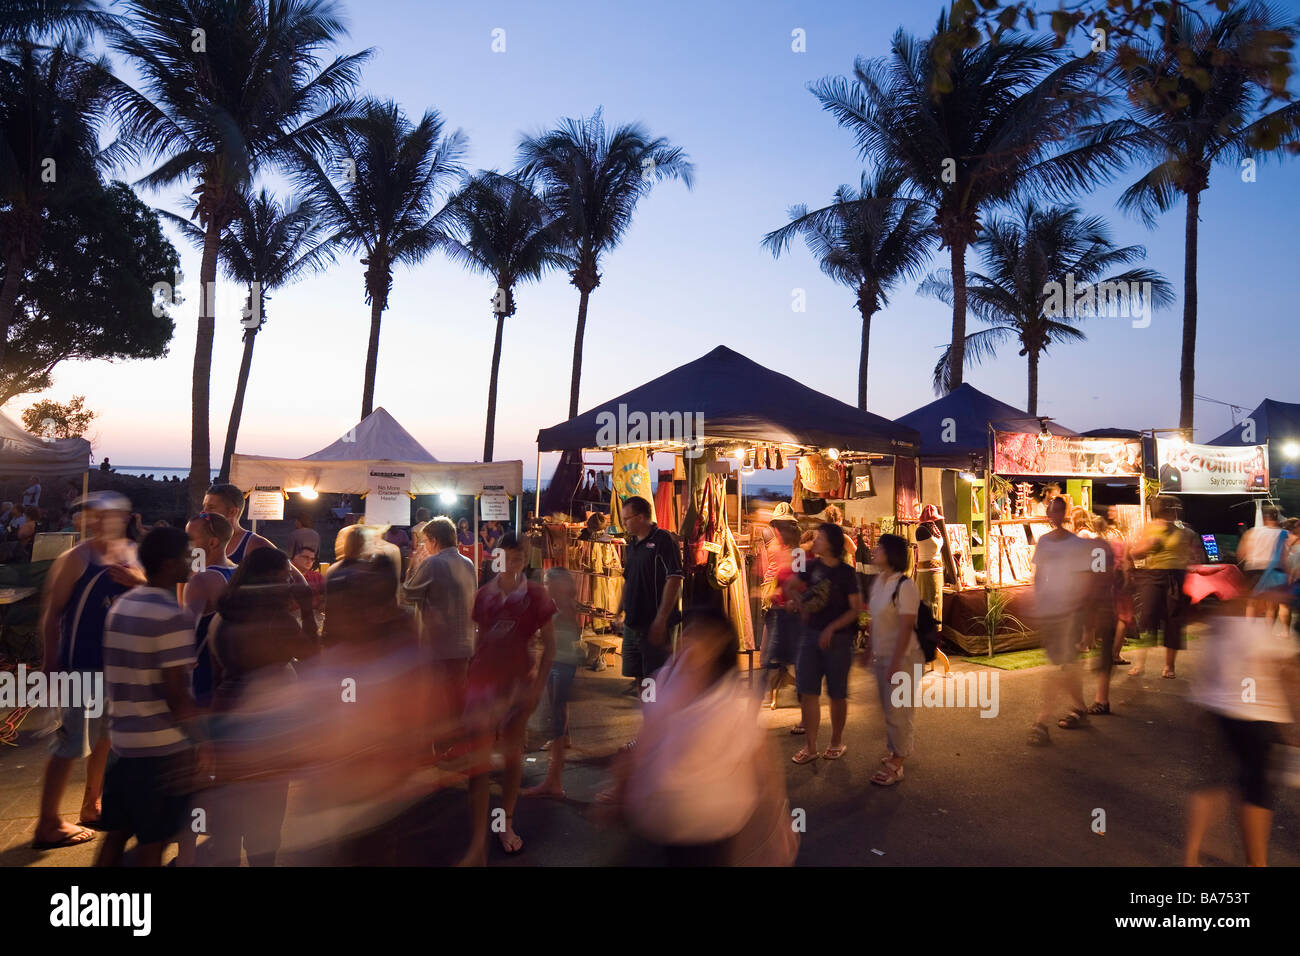 Mindil Beach Sunset Markets - a popular food and crafts market in Darwin, Northern Territory, AUSTRALIA - Stock Image